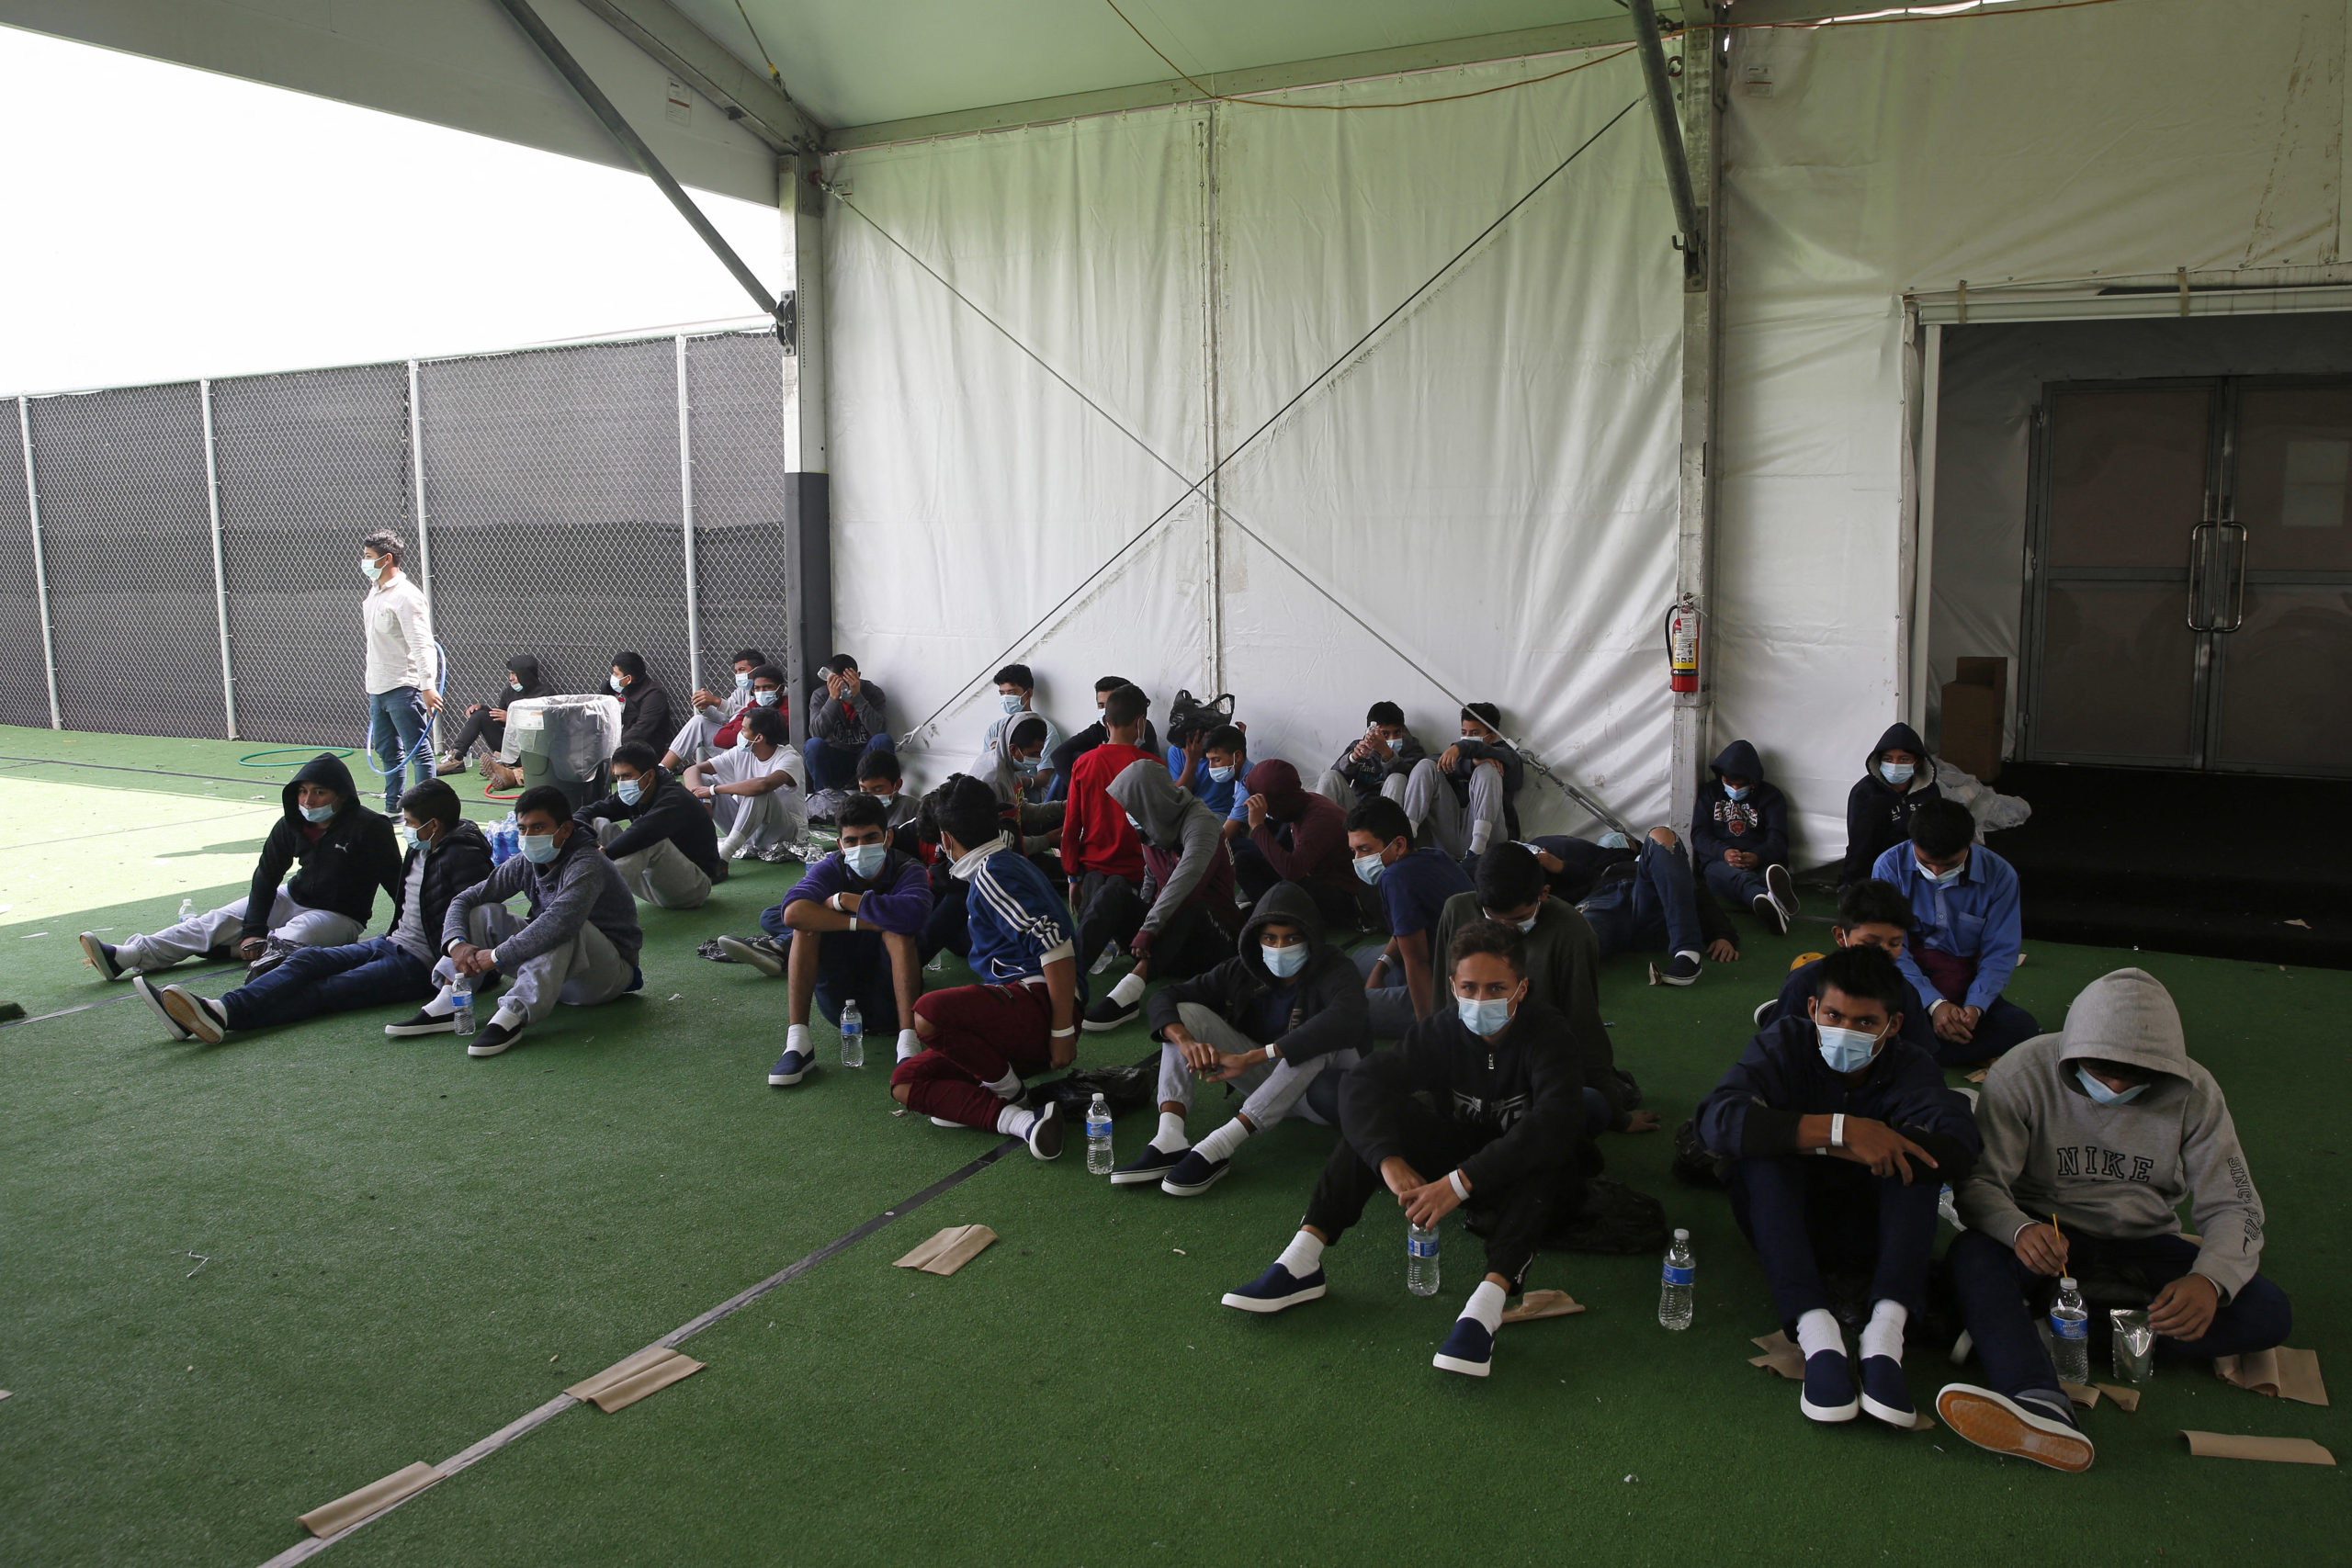 Young minors who tested positive for Covid-19 sit in the ground at the Donna Department of Homeland Security holding facility, the main detention center for unaccompanied children in the Rio Grande Valley run by the US Customs and Border Protection. (Photo by DARIO LOPEZ-MILLS/POOL/AFP via Getty Images)